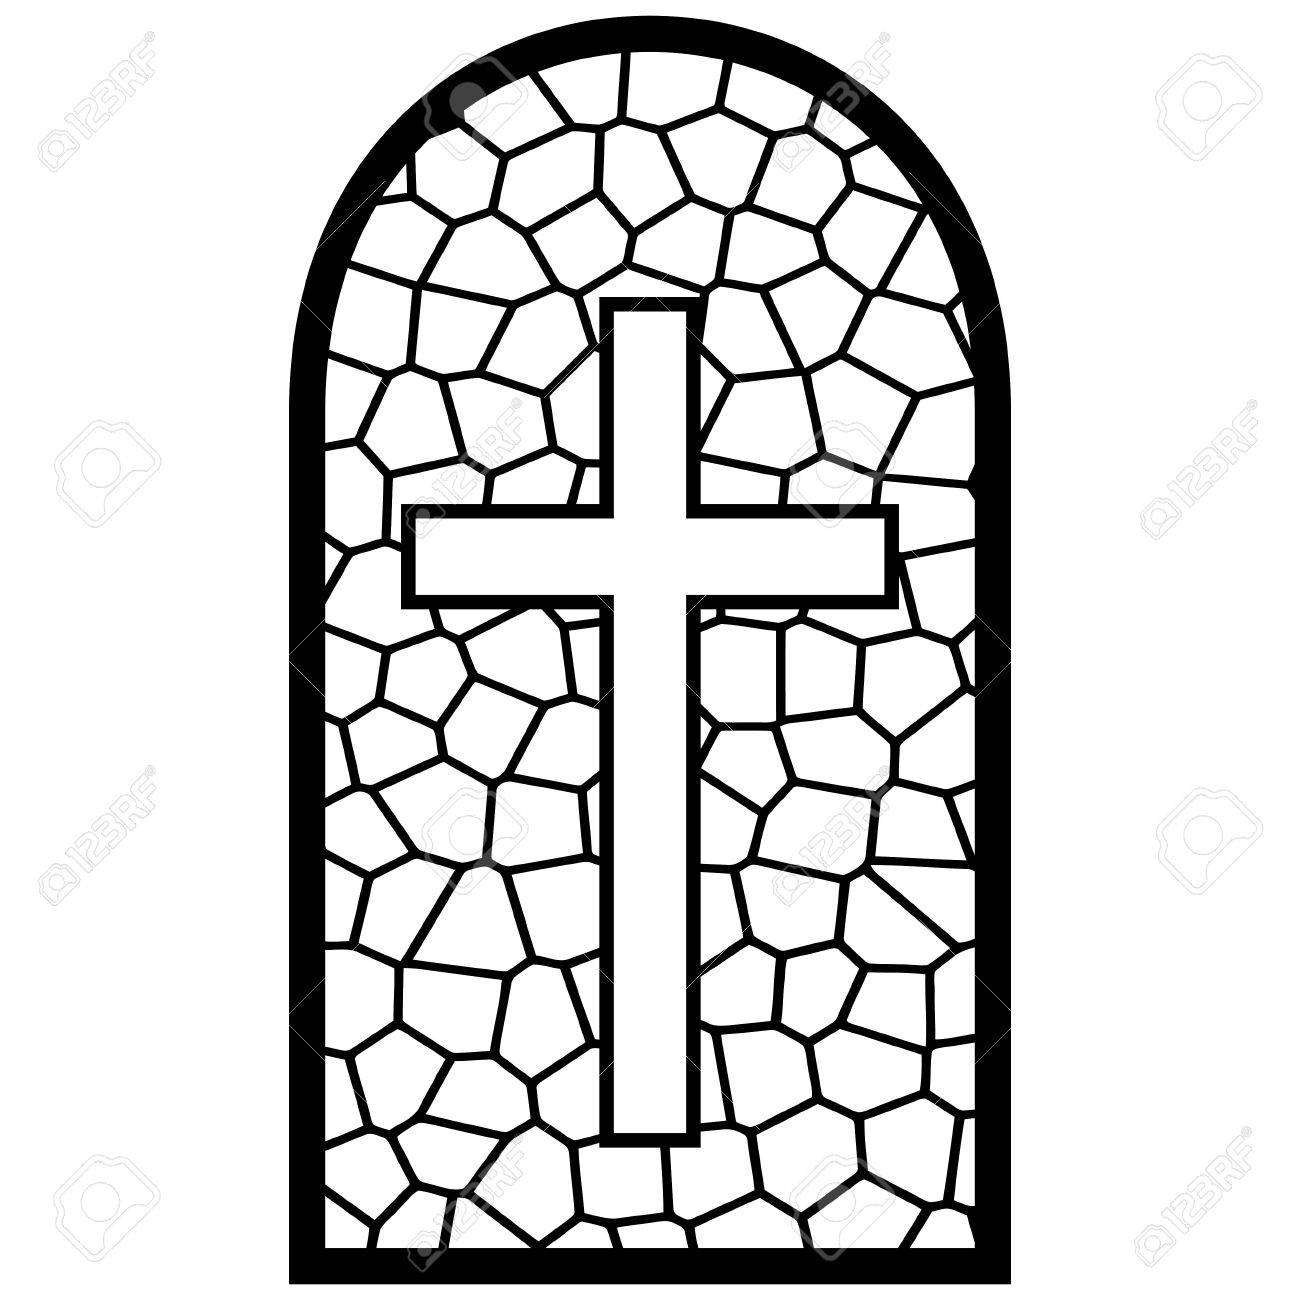 1300x1300 Stained Glass Window Illustration Royalty Free Cliparts, Vectors